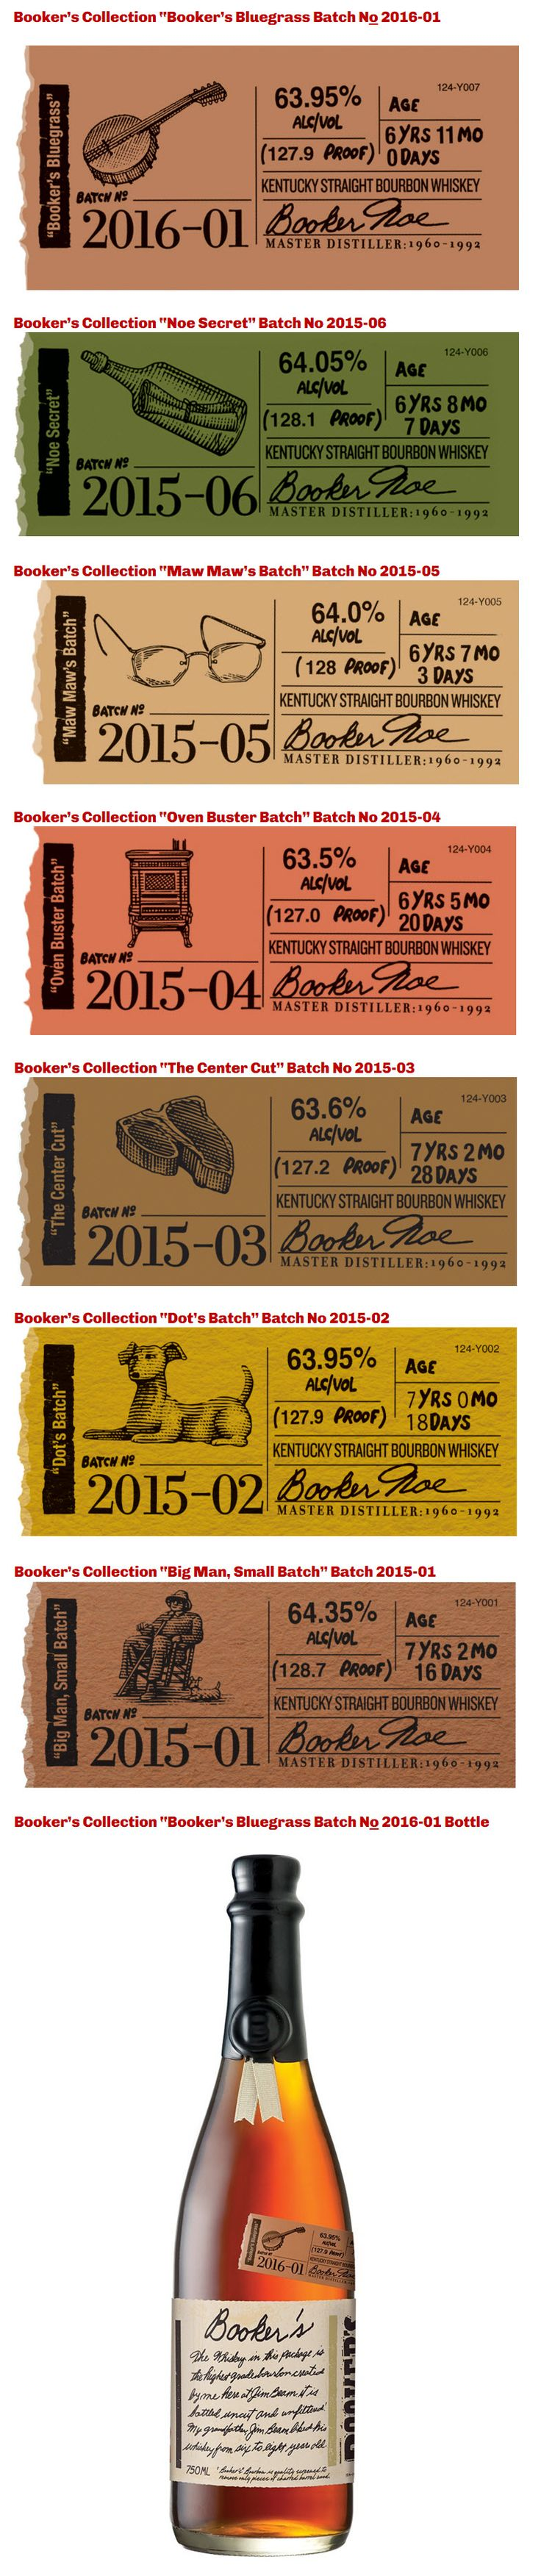 1st of 6 Booker's Batches Includes 2 of Noe's Favorite Things – Whiskey & Bluegrass. Here's the complete collection of Booker's Bourbon Labels. They are simple and true to the brand.